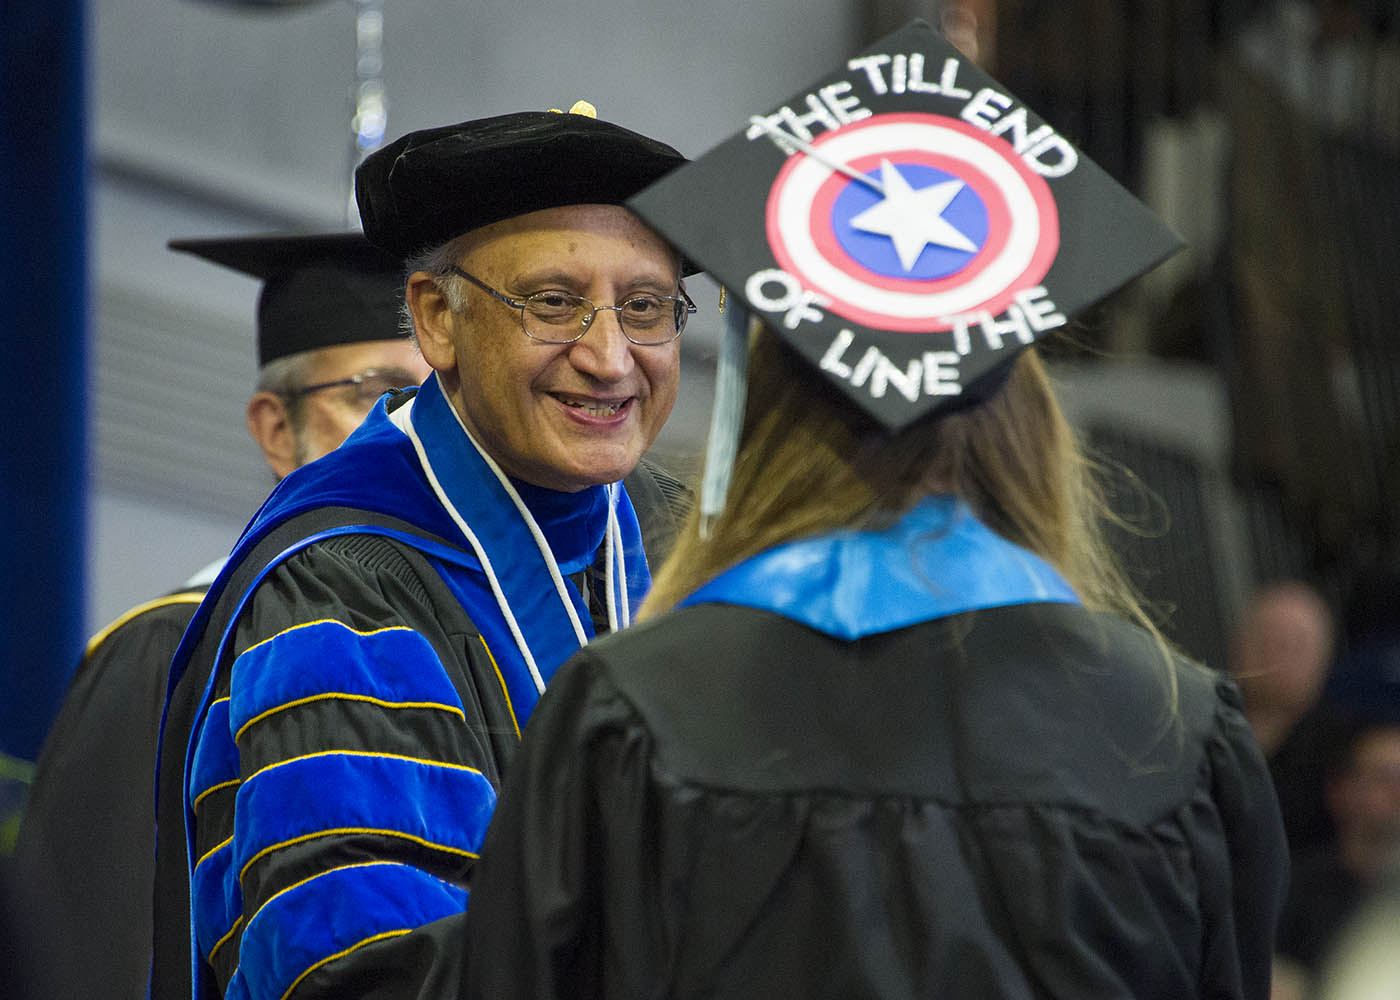 Western Washington University to Hold Winter Commencement March 23